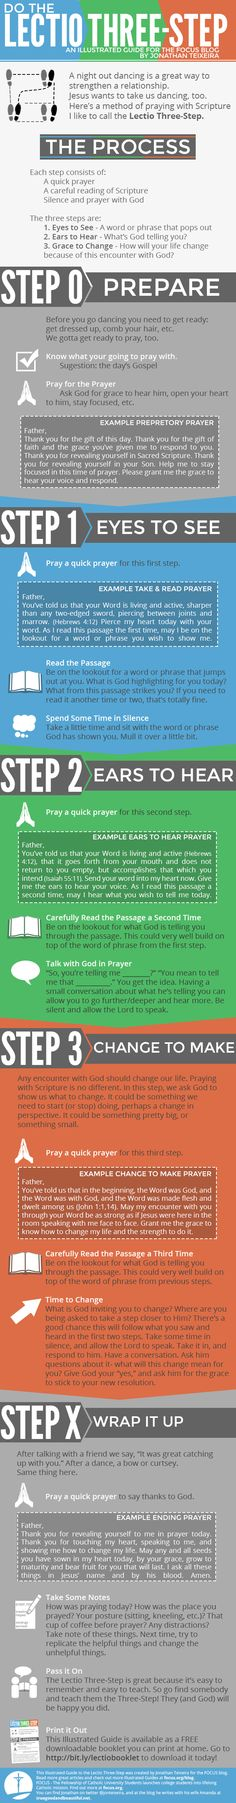 Simple 3 Steps to Praying with Lectio Divina method. (Printable link is at the bottom too).